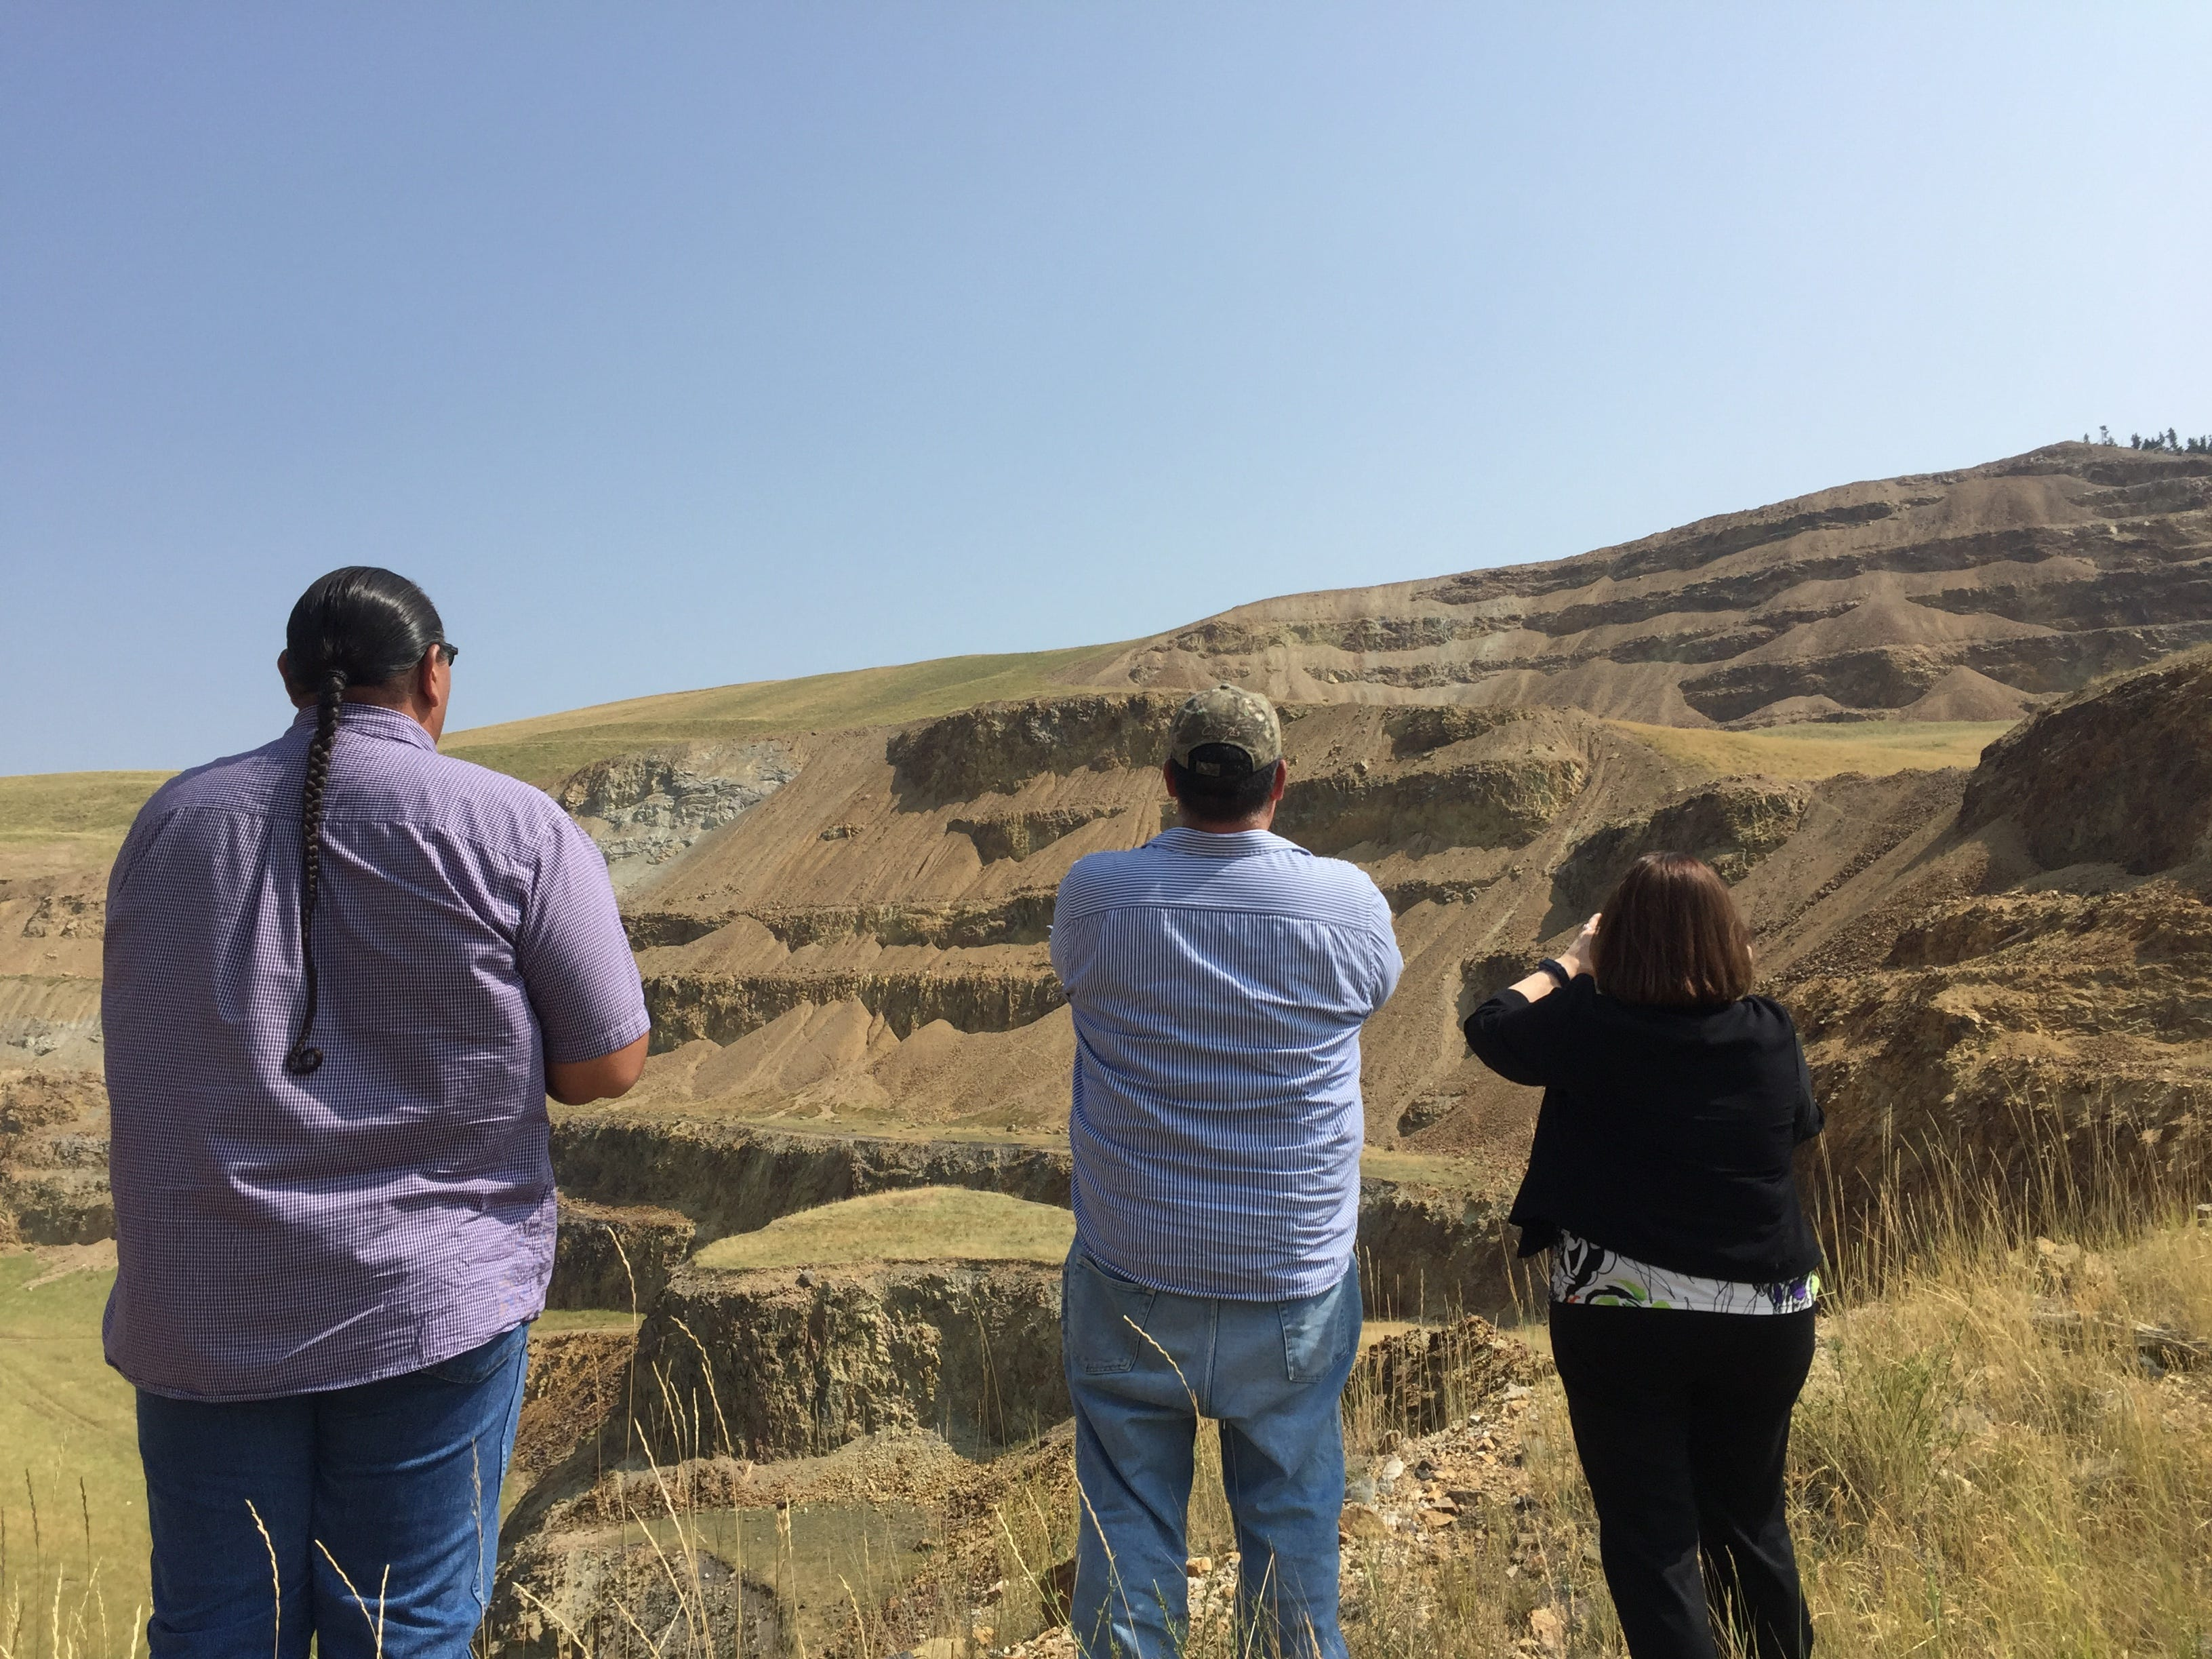 During a tour of the Zortman and Landusky mines in August, participants snapped photos of the Landusky pit as bighorn sheep scrambled on its steep slopes.